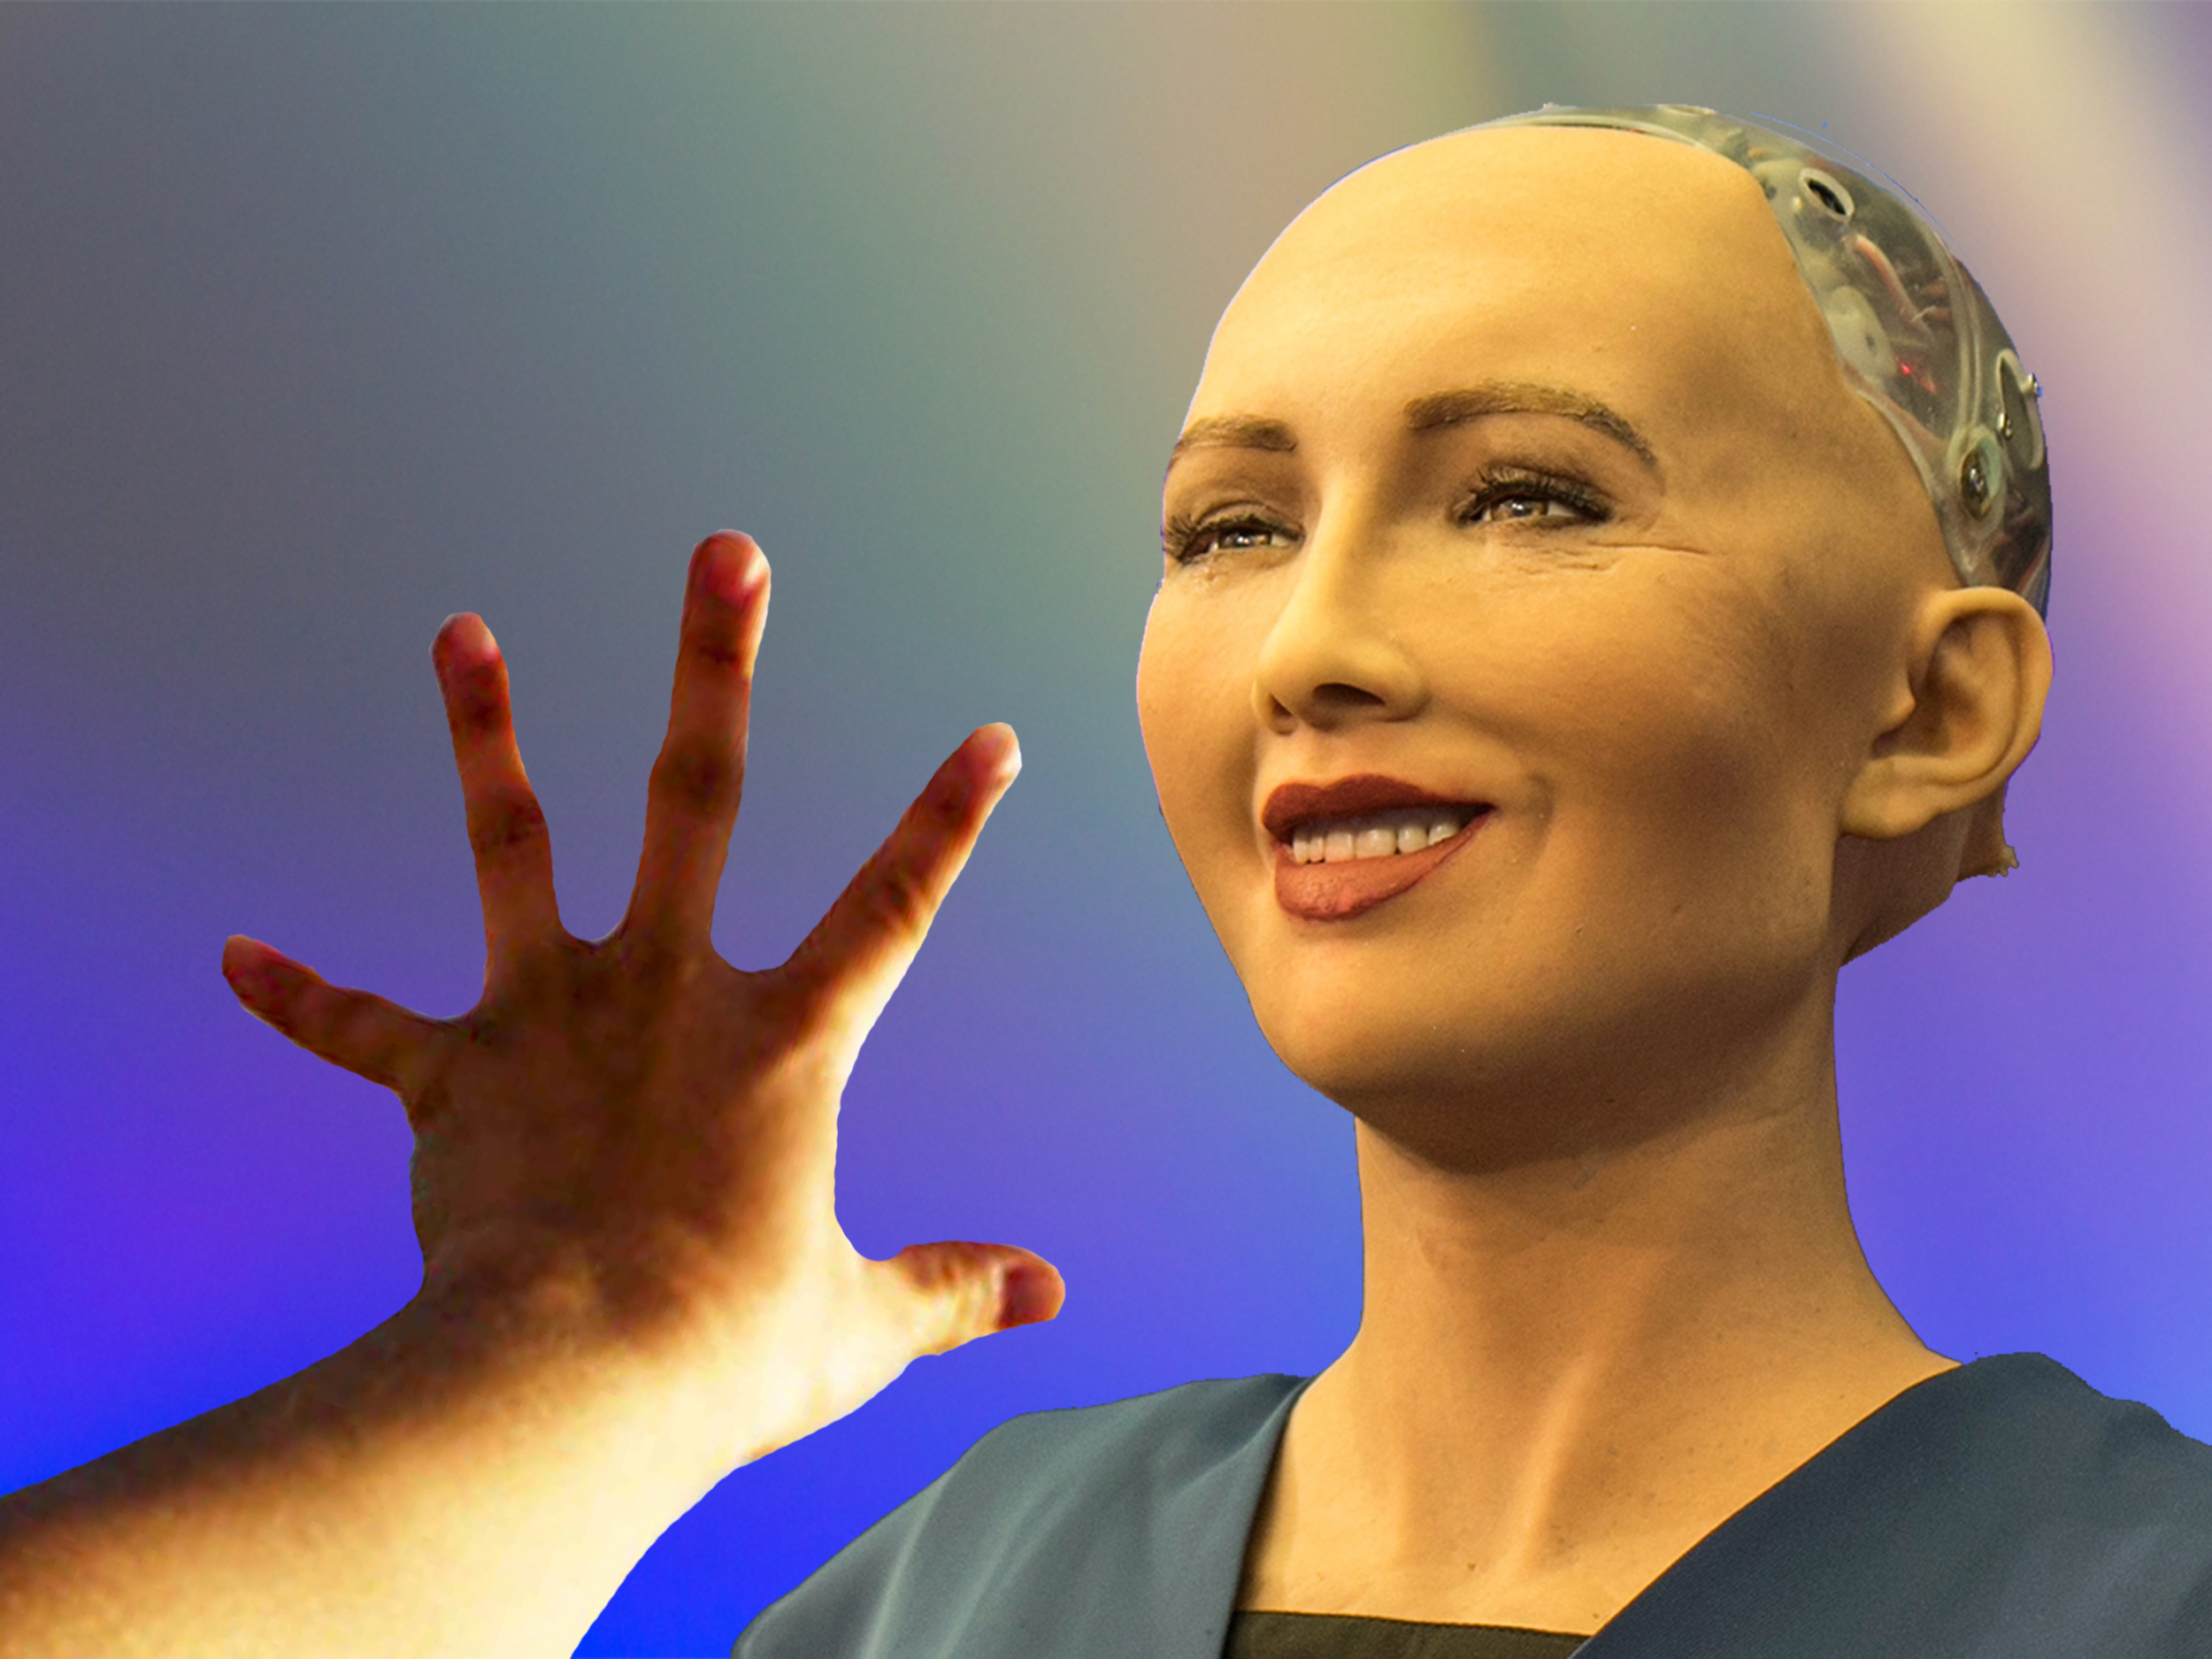 Sophia the Robot is being mass produced for a world plagued with loneliness